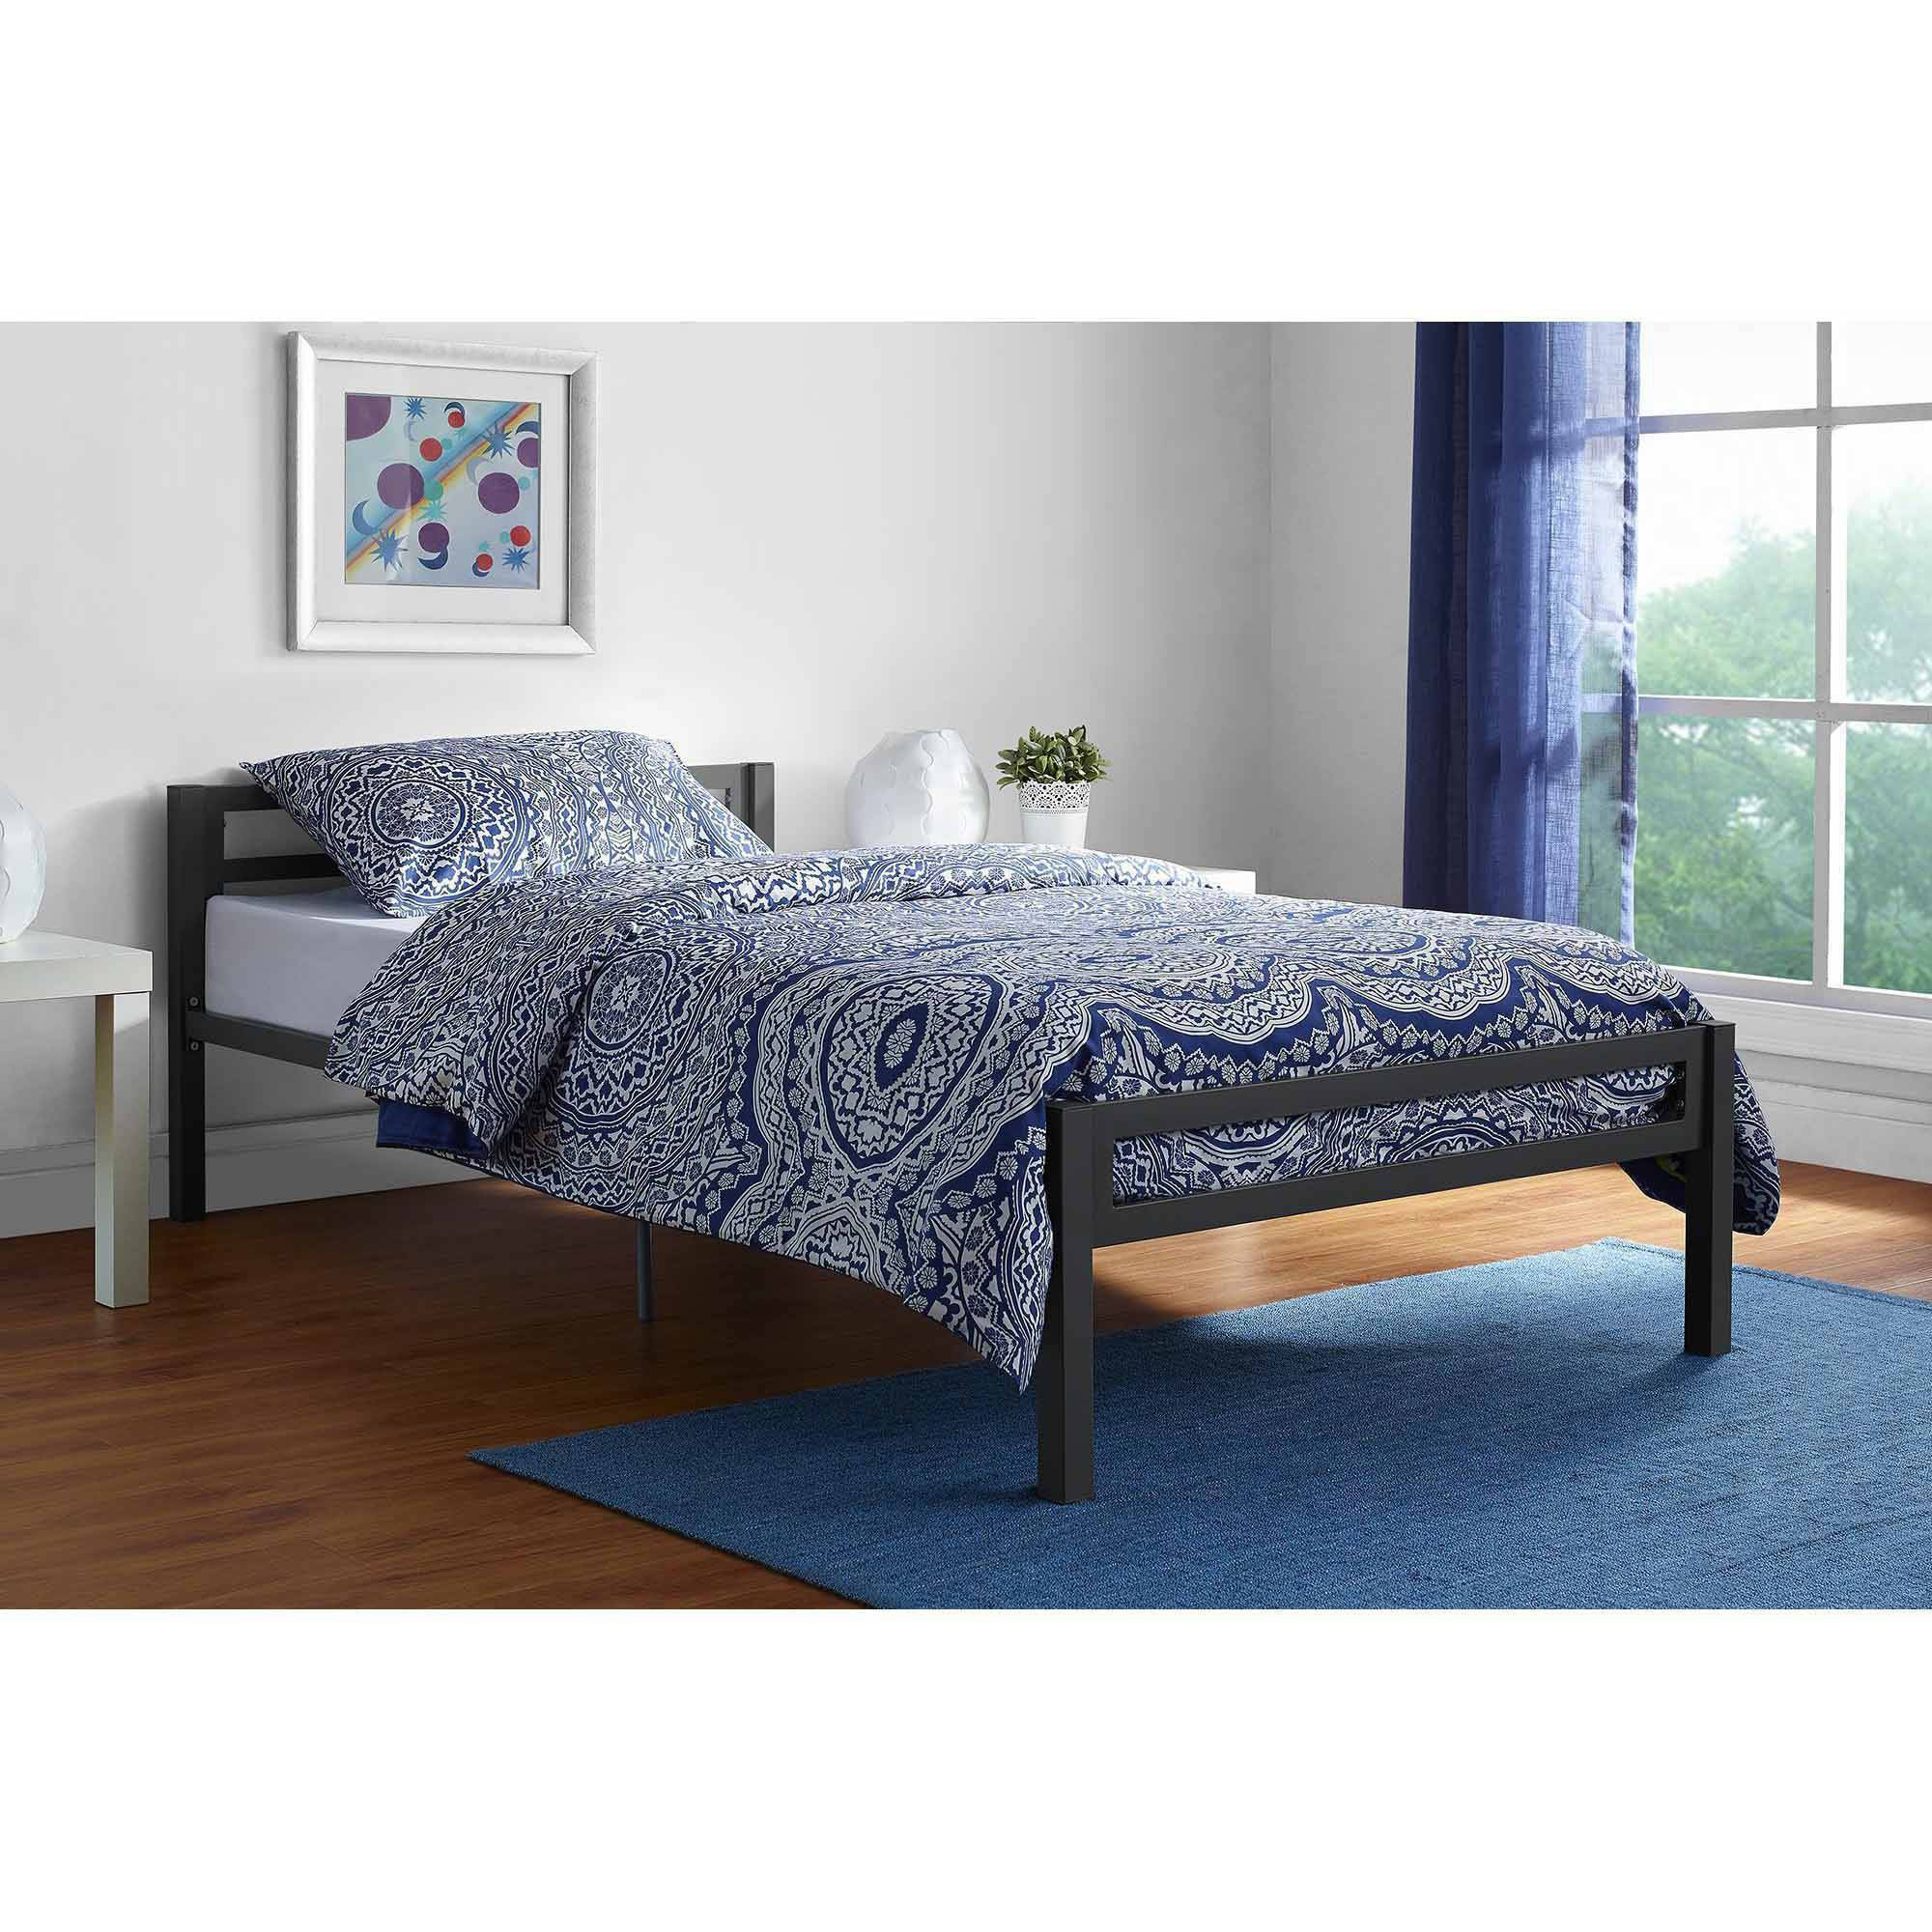 Mainstays Premium Metal Twin Bed, Multiple Colors   Walmart.com